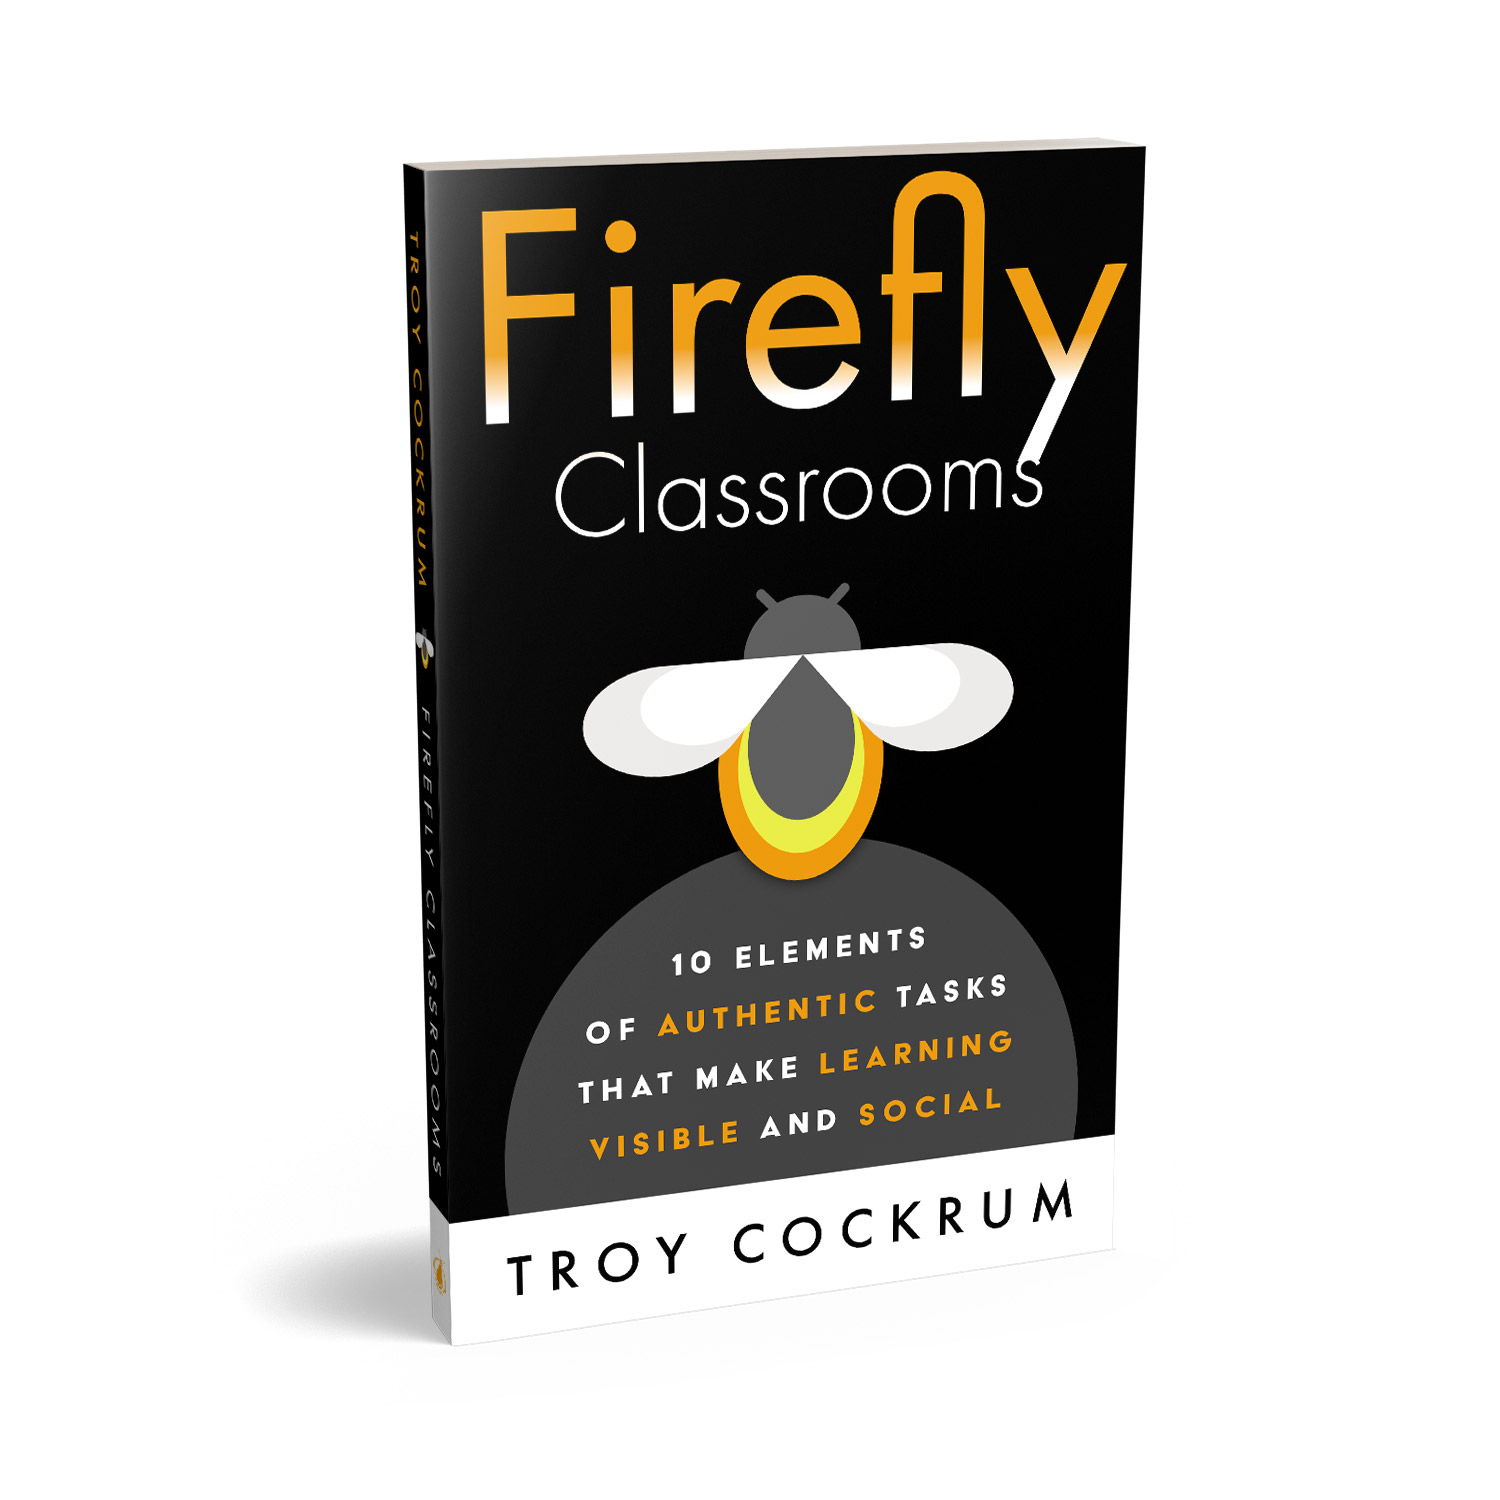 'Firefly Classrooms' is an excellent 'how to' book on harnessing the creativity of schoolchildren, by Troy Cockrum. The book cover and interior were designed by Mark Thomas, of coverness.com. To find out more about my book design services, please visit www.coverness.com.